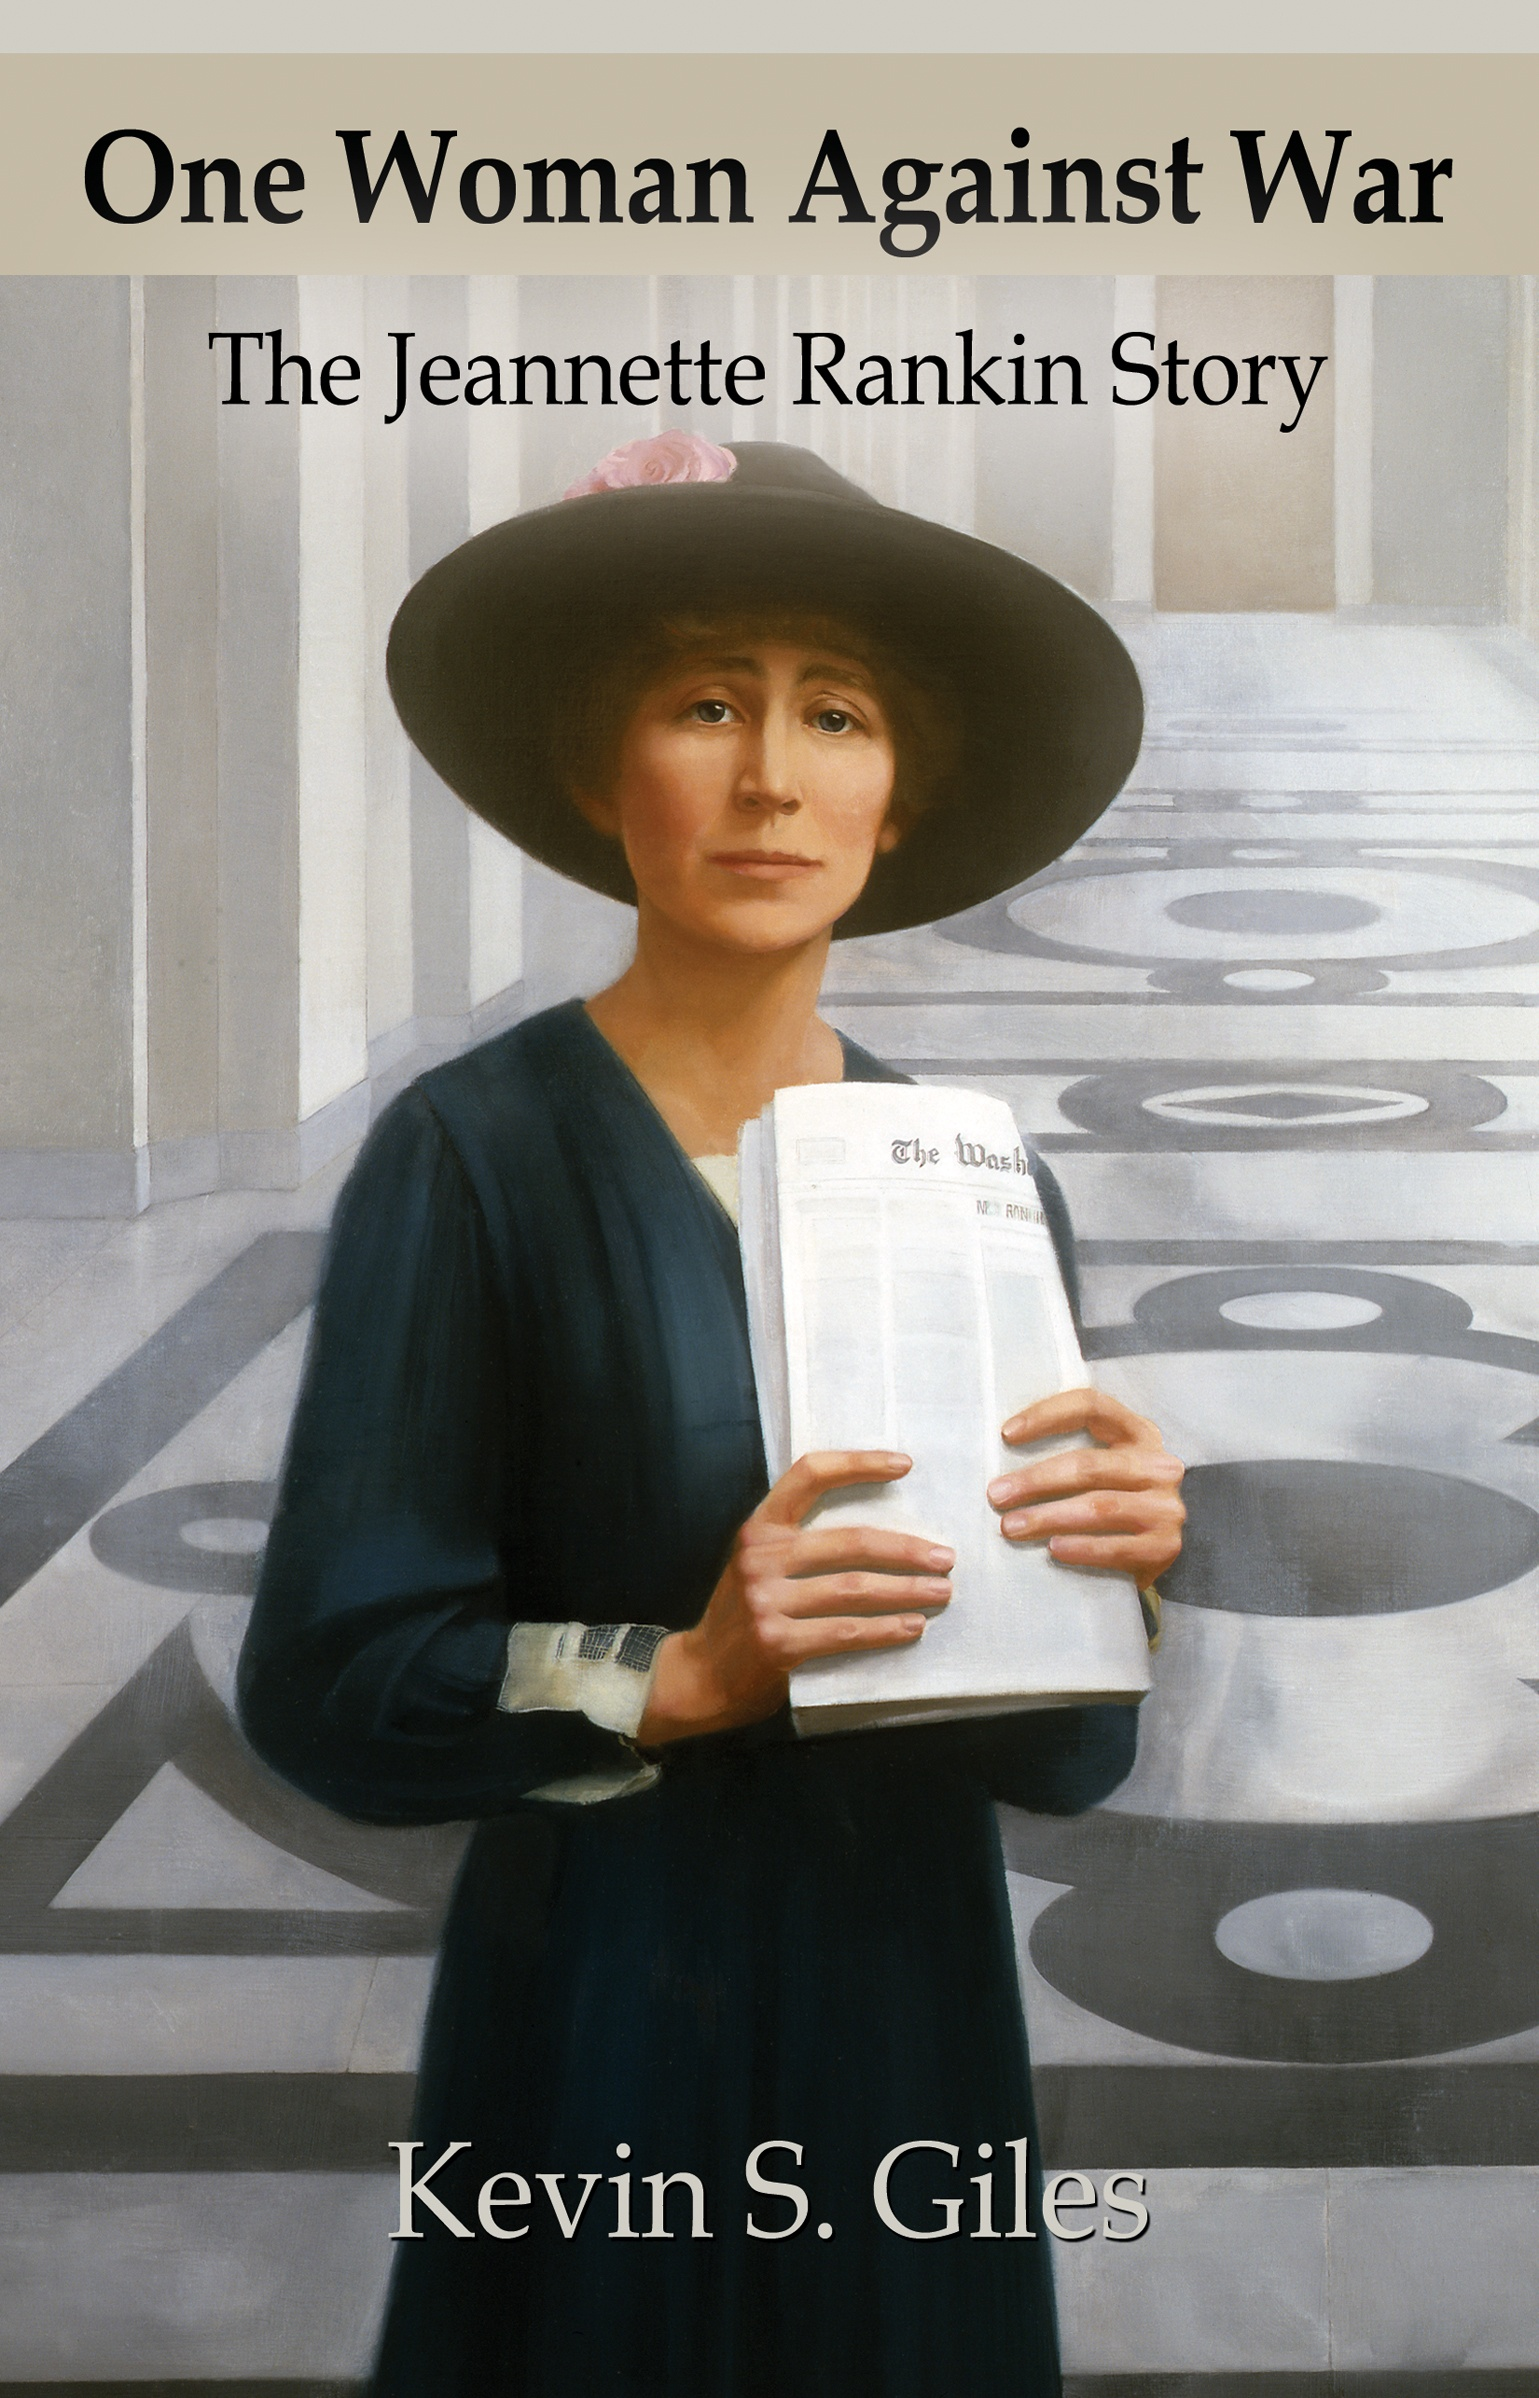 Buy 'One Woman Against War: The Jeannette Rankin Story'